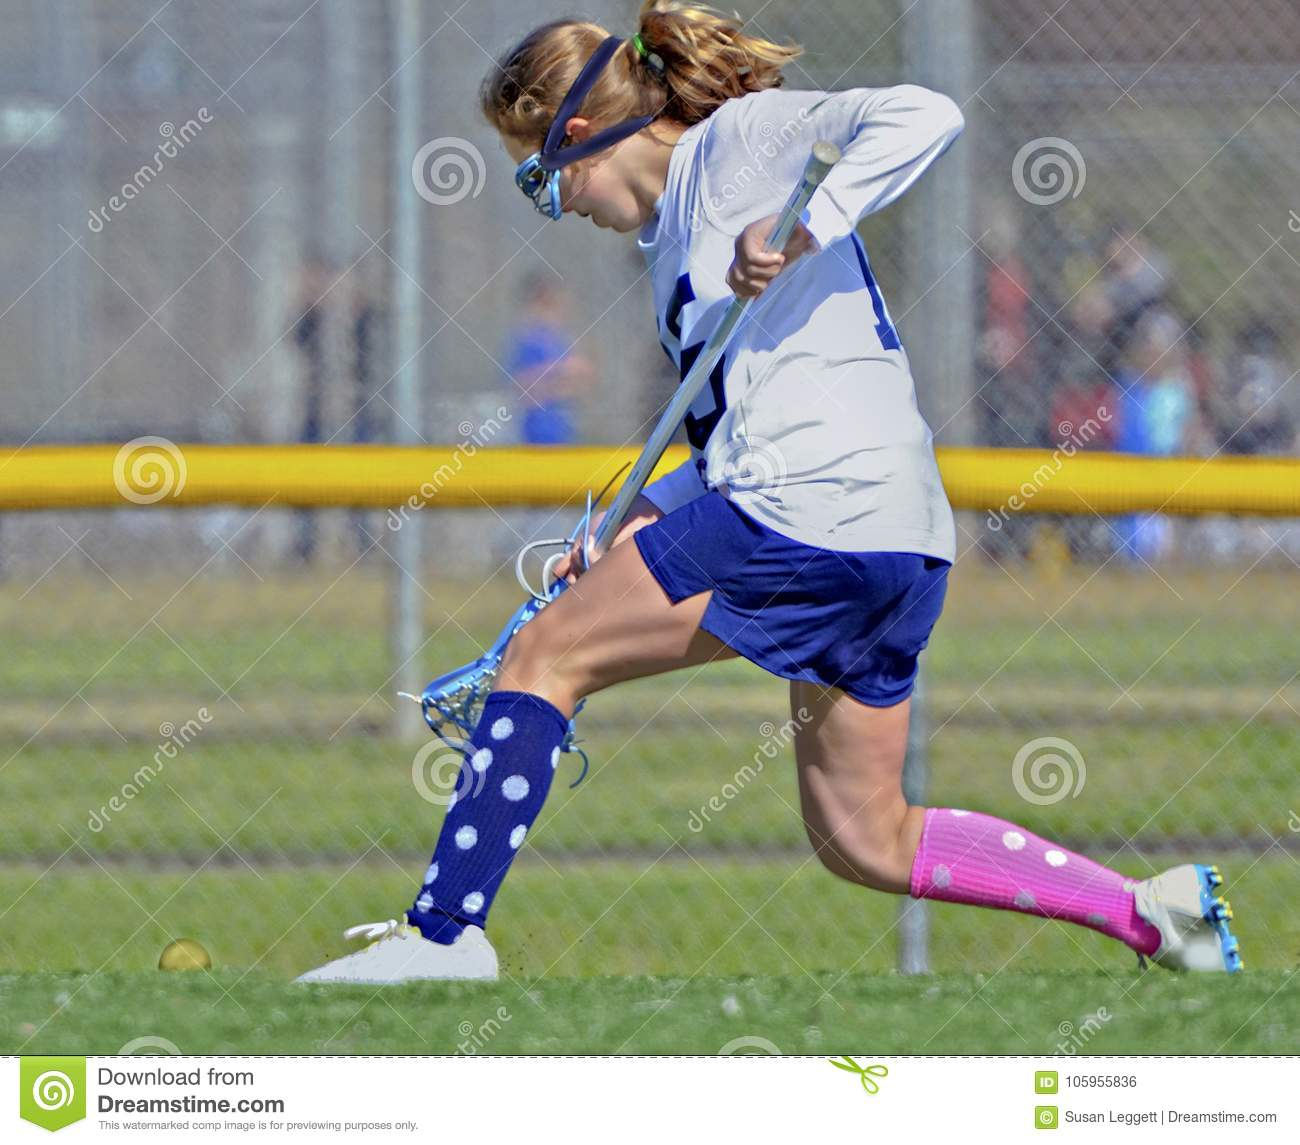 Young Girl Lacrosse Player Running for the Ball